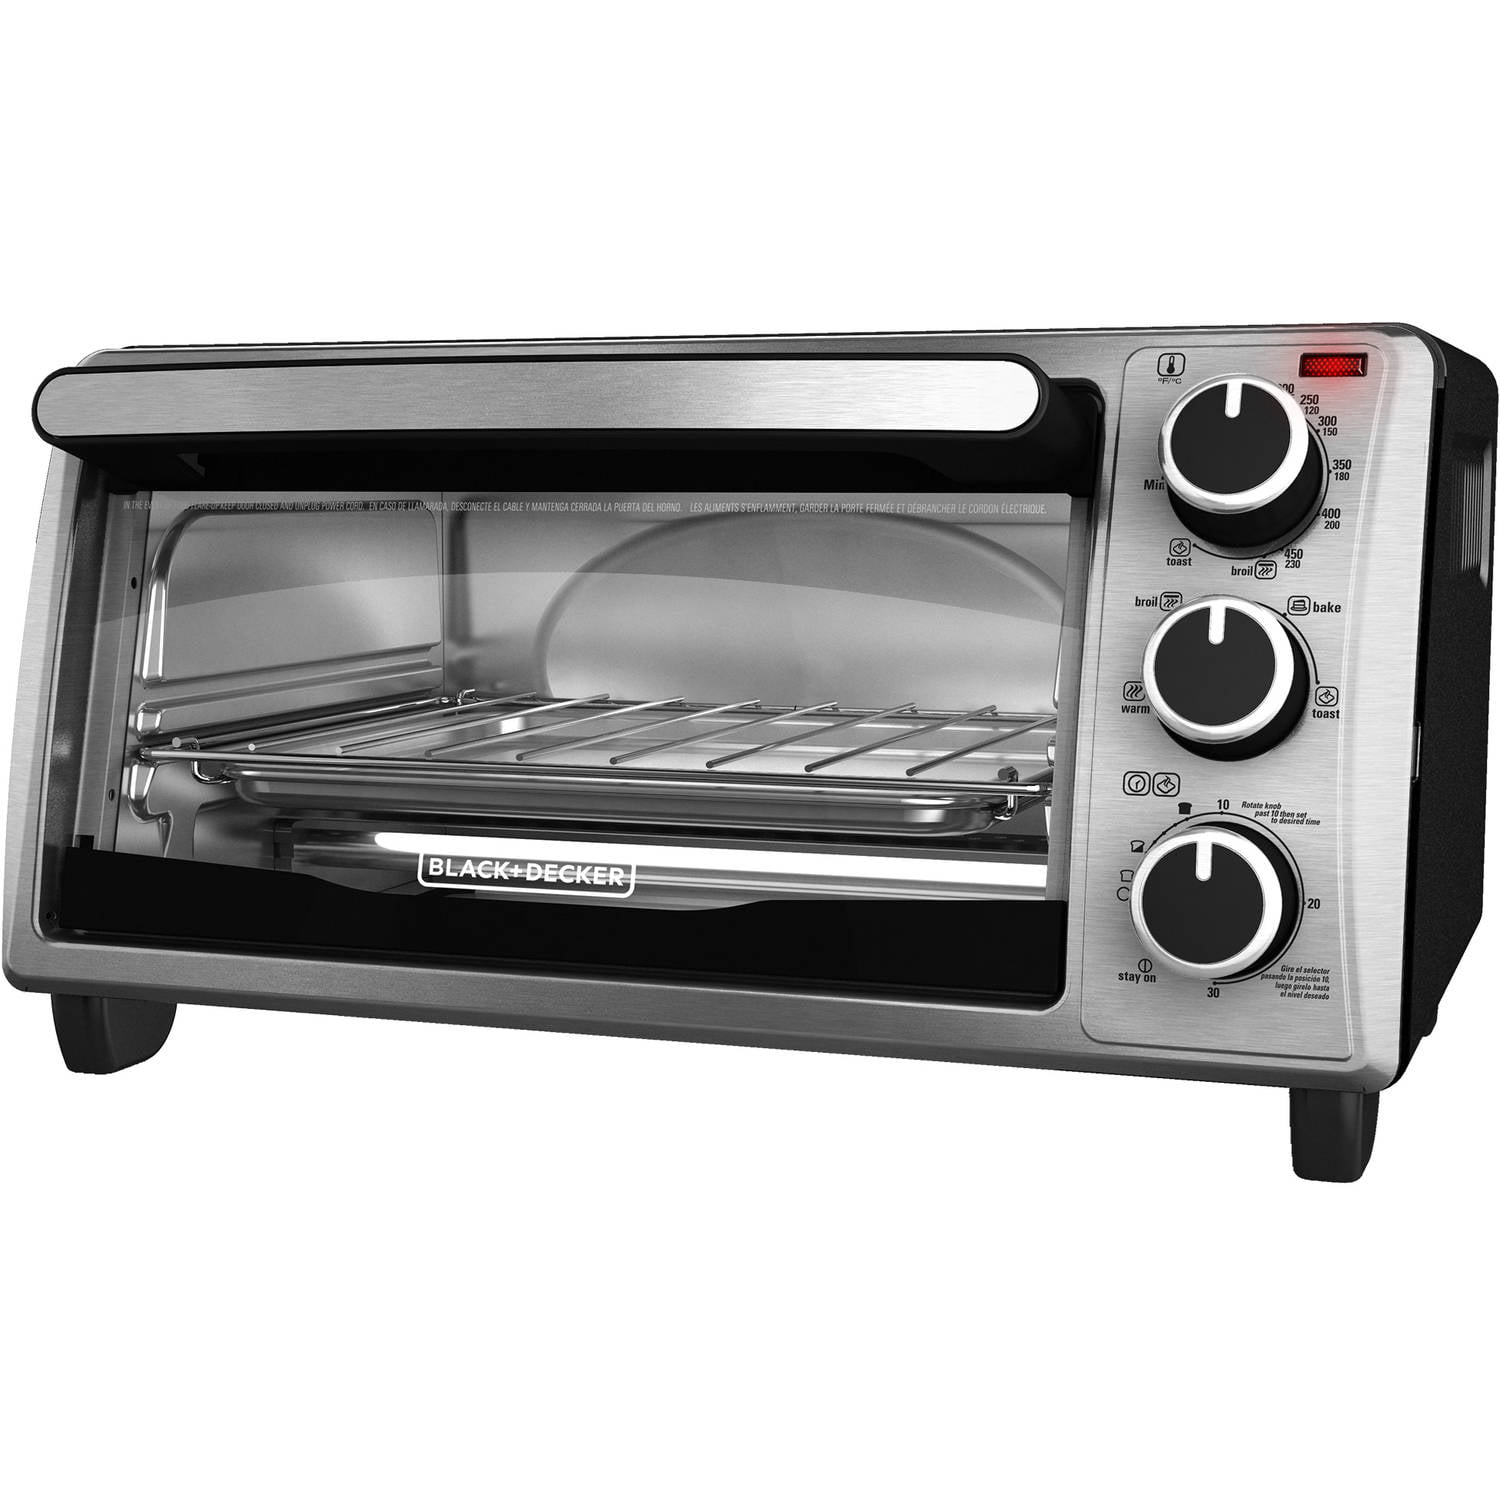 control toaster convection glossy broiler range chrome stainless heat sale element cool stylish endearing white toasters ovens brushed epic and three large slice modern with rotate at silver steel walmart kitchen for pan target on oven elements ts appliances brentwood appliance